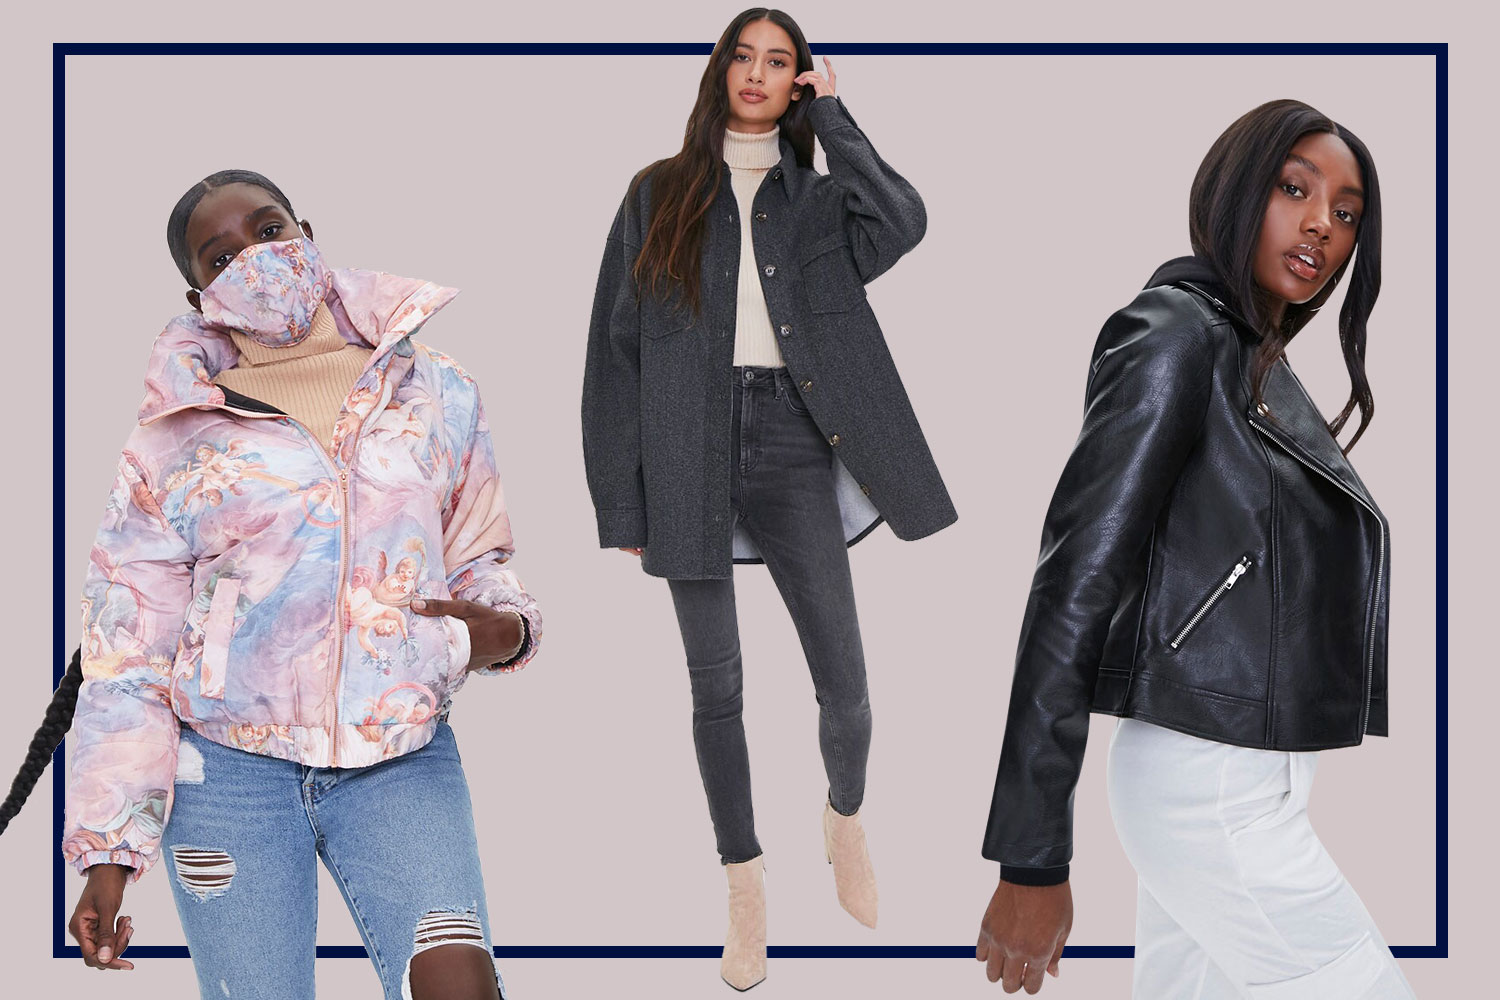 This Mall Brand Has Over 300 Winter Coats and Jackets On Sale For Under $80